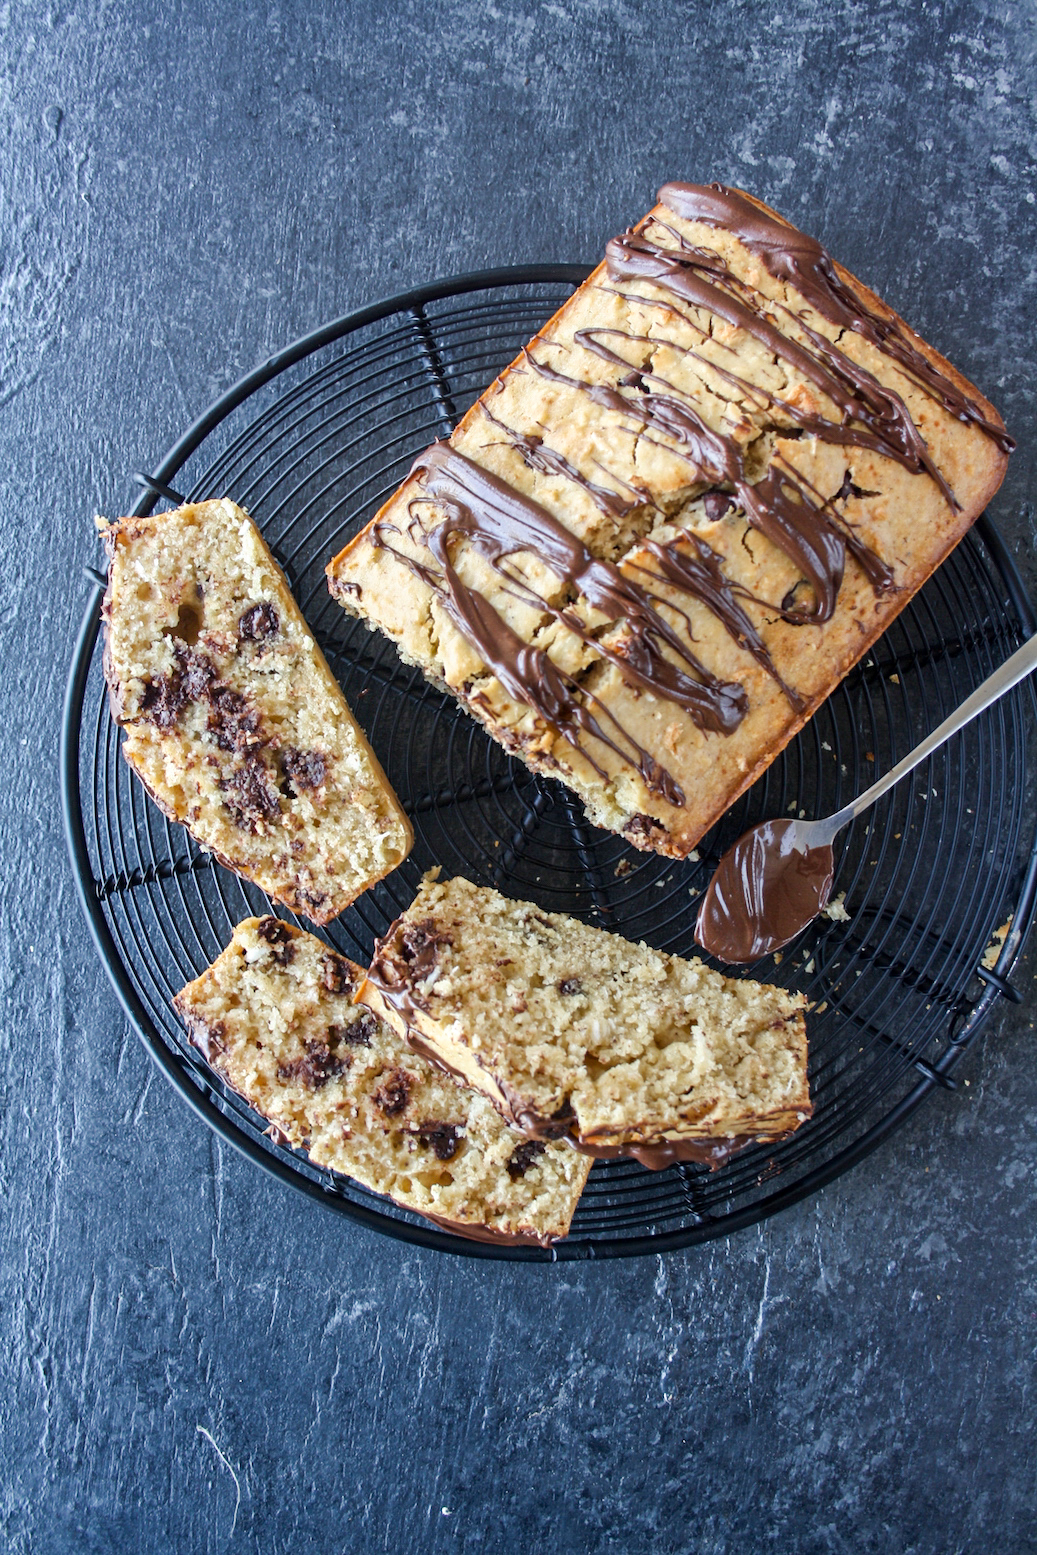 Coconut loaf cake with browned butter and chocolate chips